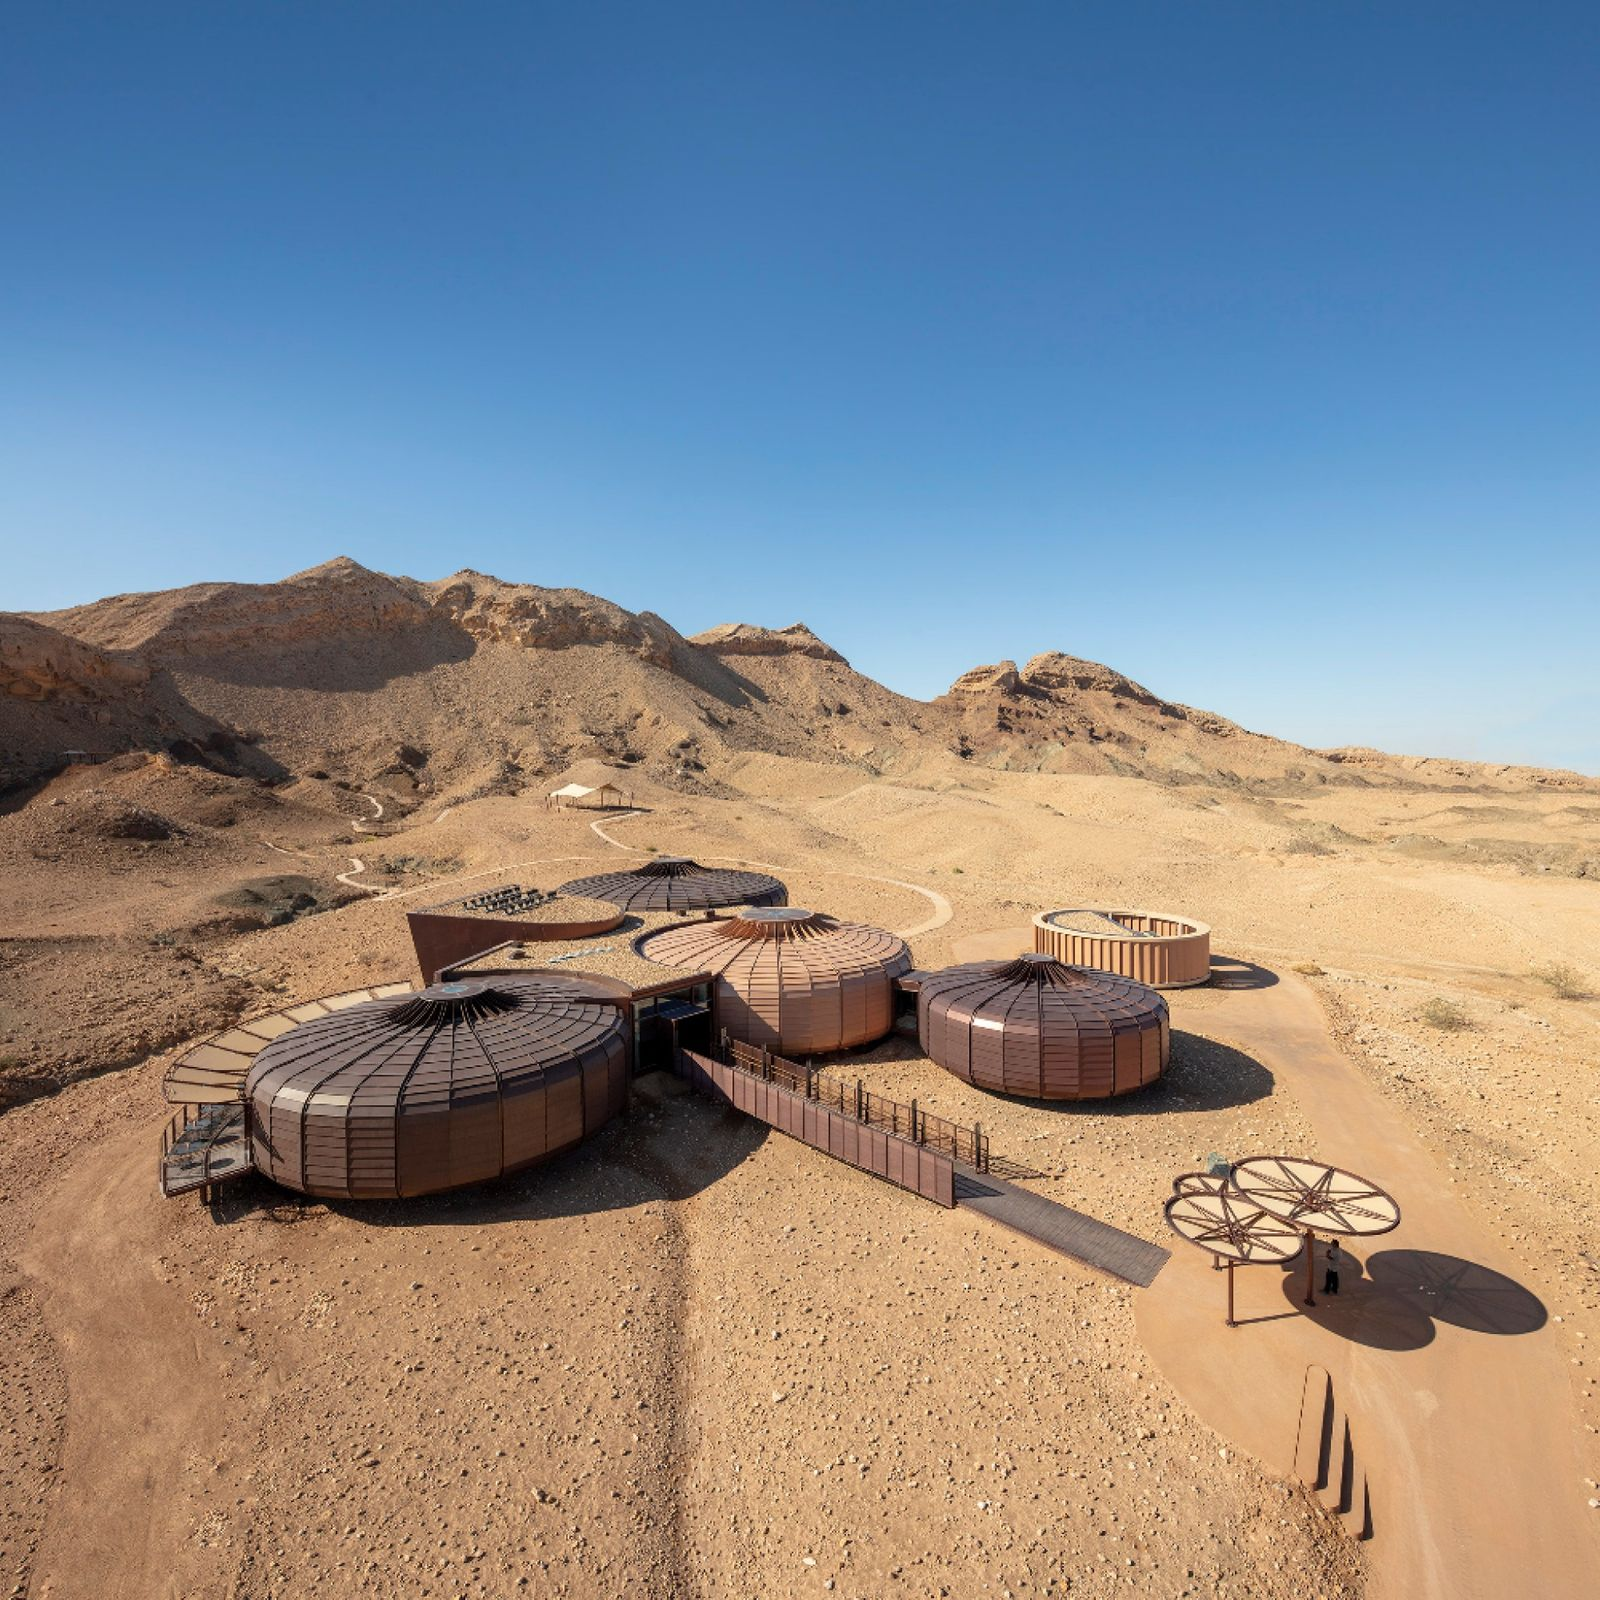 Buhais Geology Museum responds sensitively to its spectacular desert site